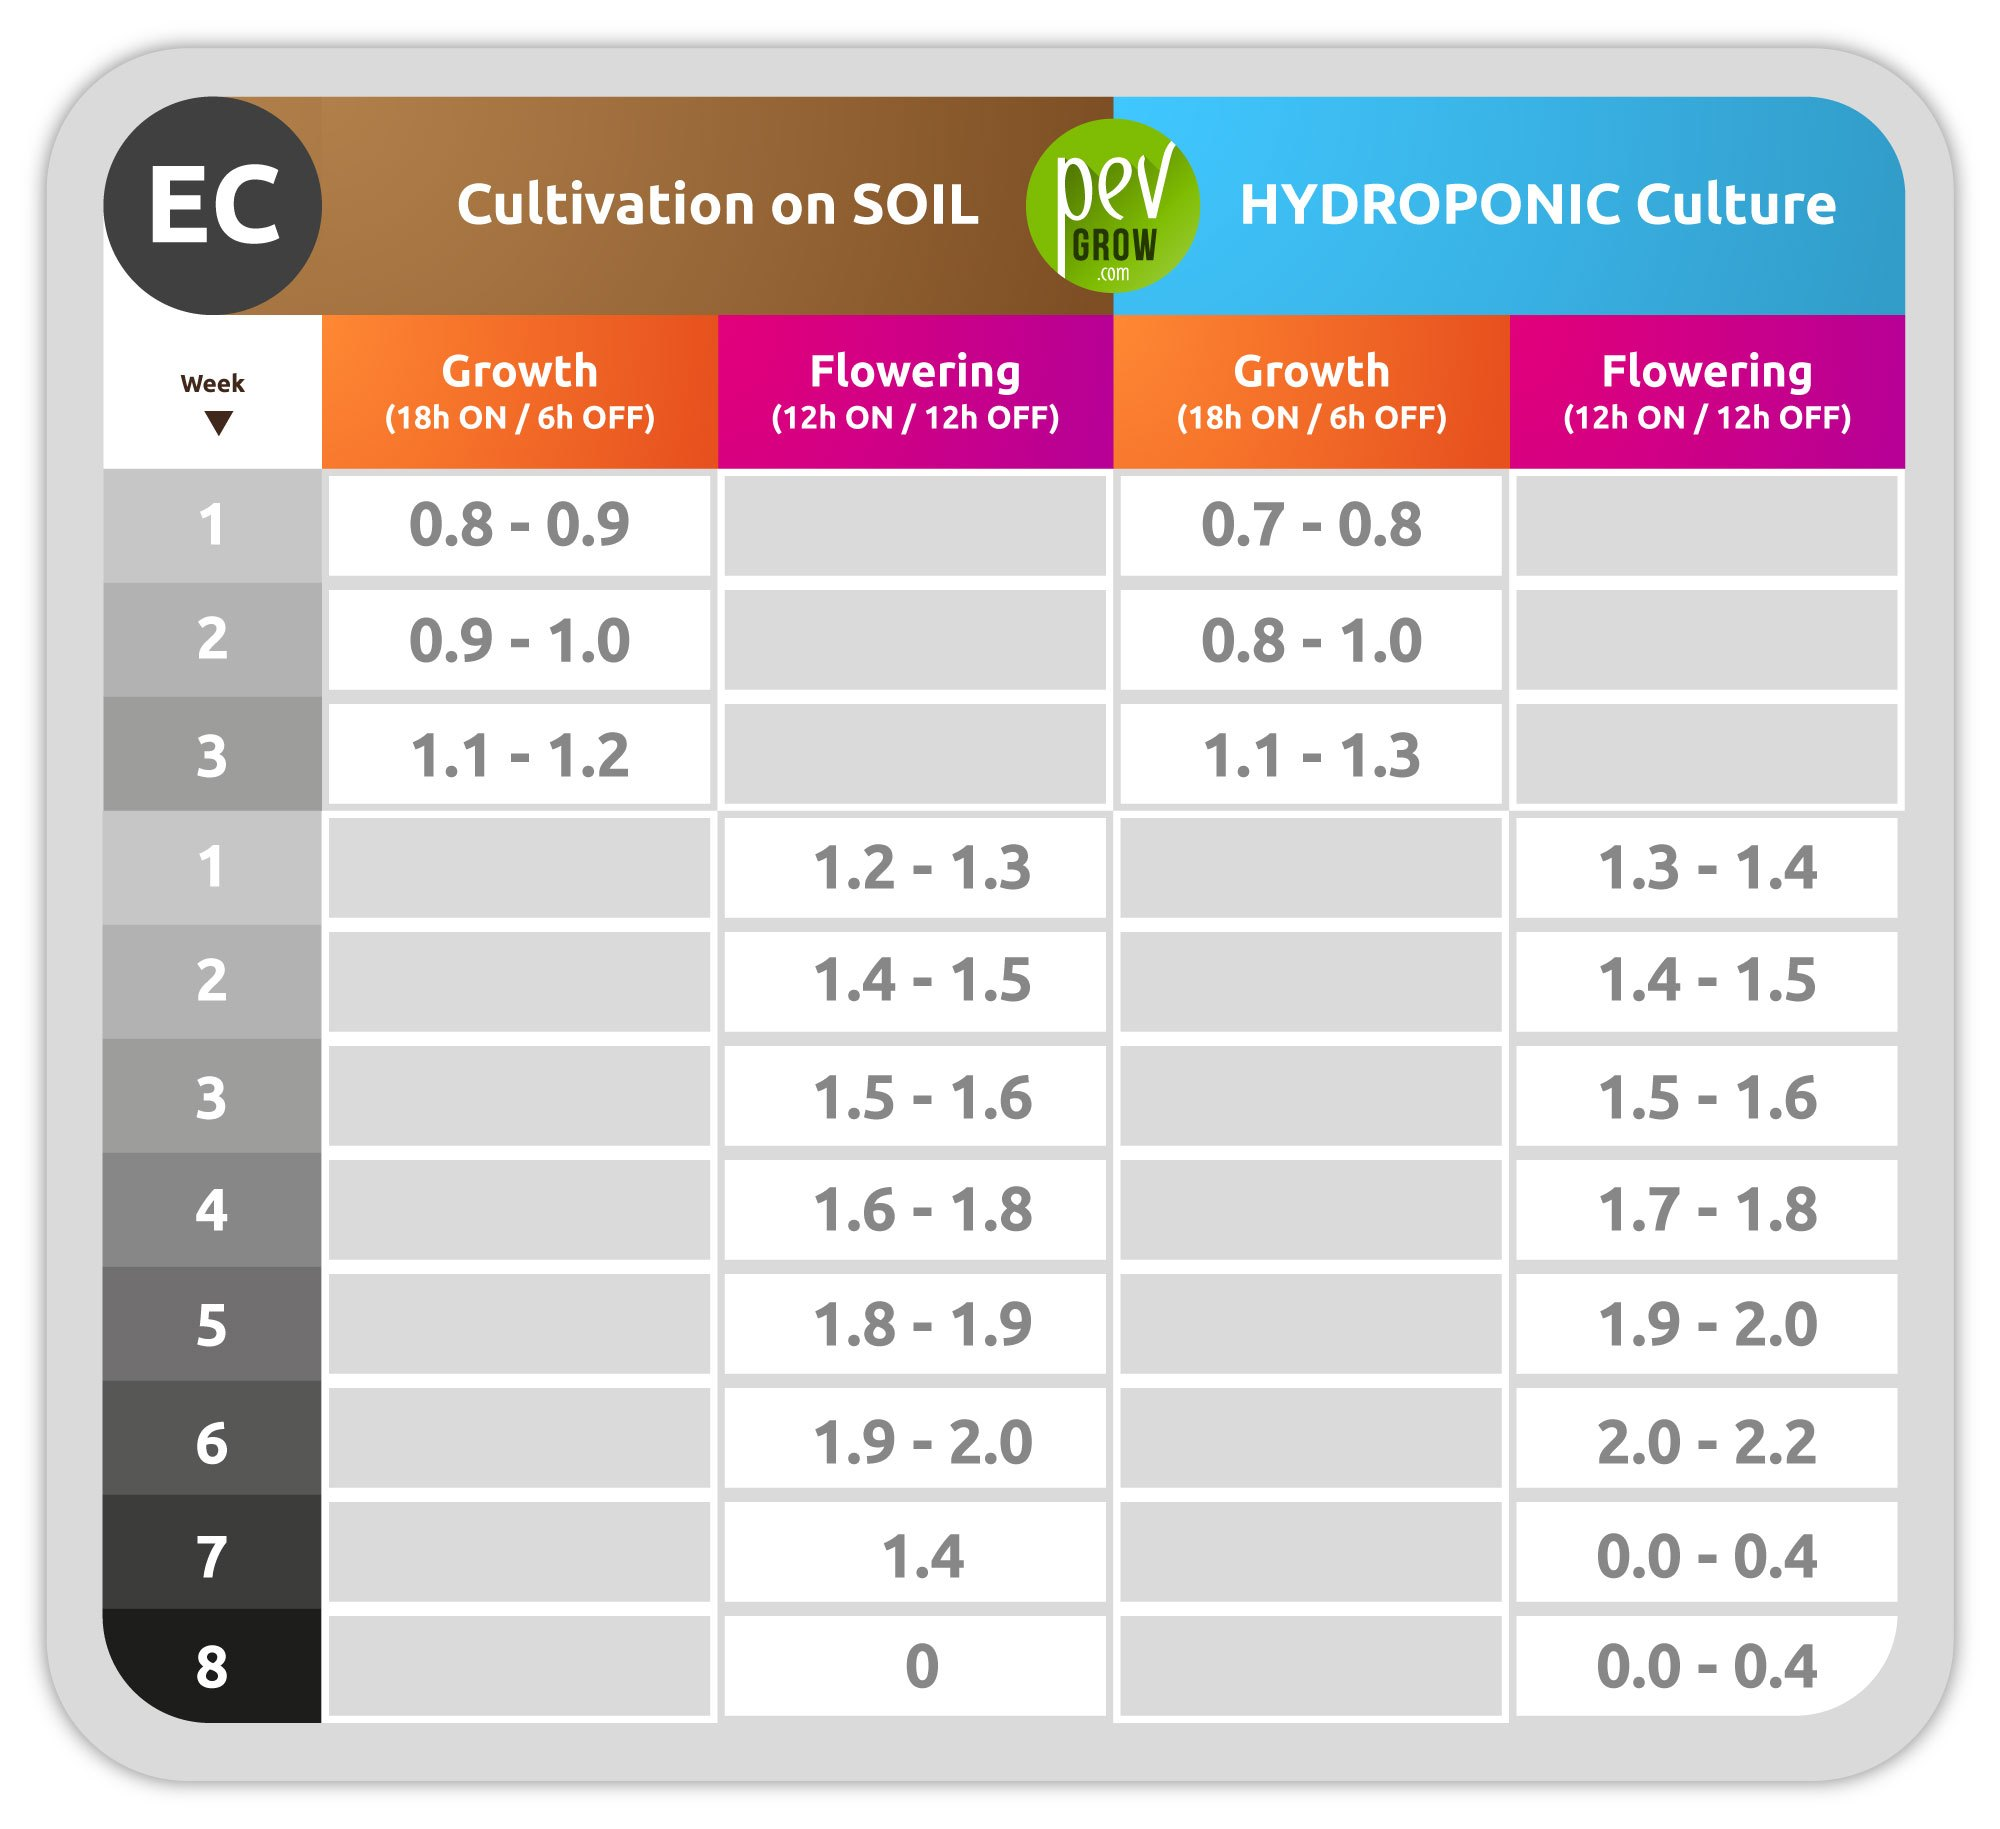 EC value of recommended water in soil and hydroponics